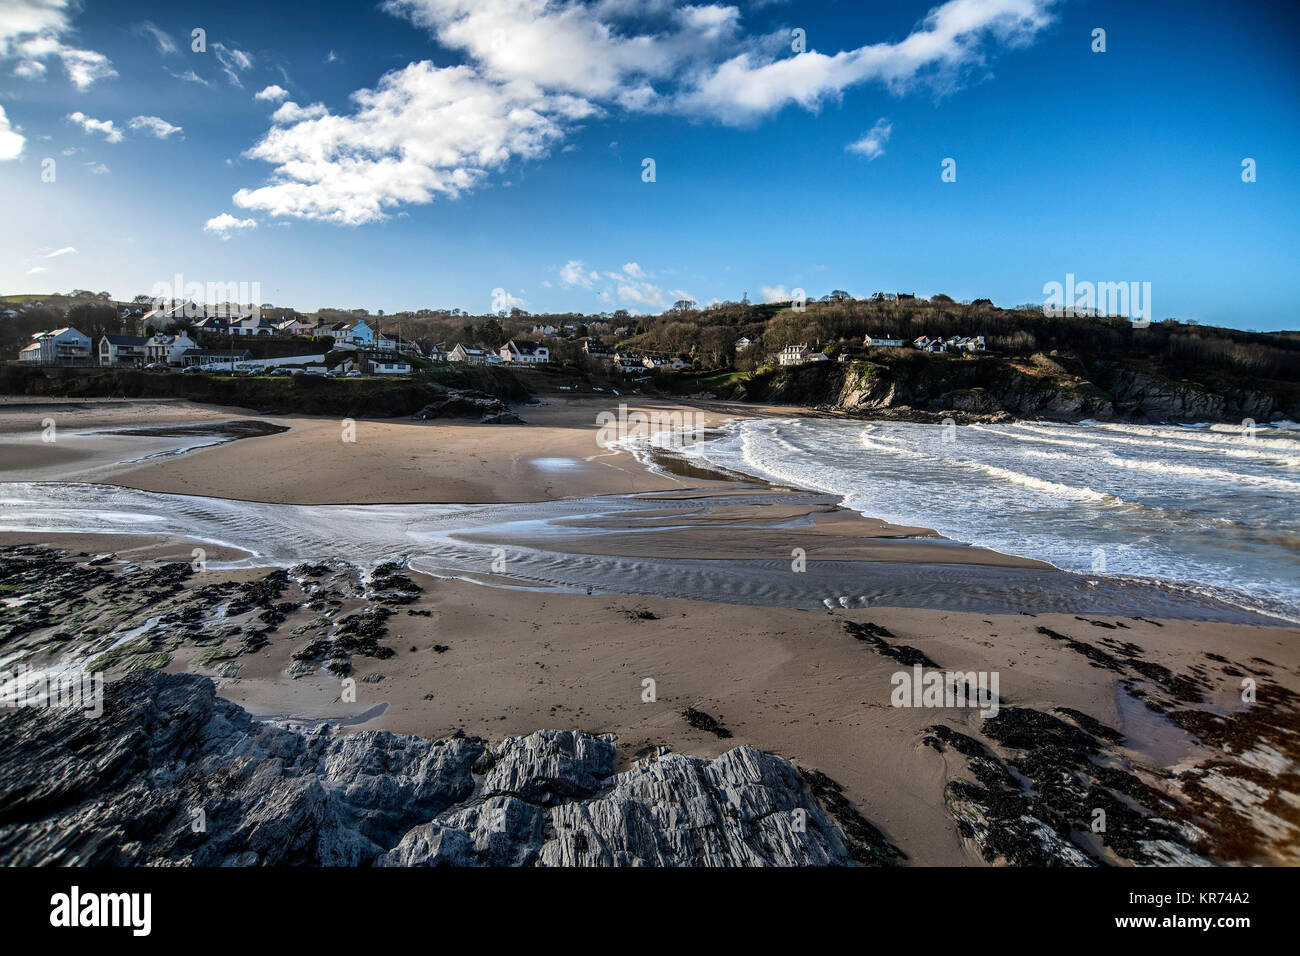 The village of Aberporth on the Cardiganshire coast, West Wales - Stock Image